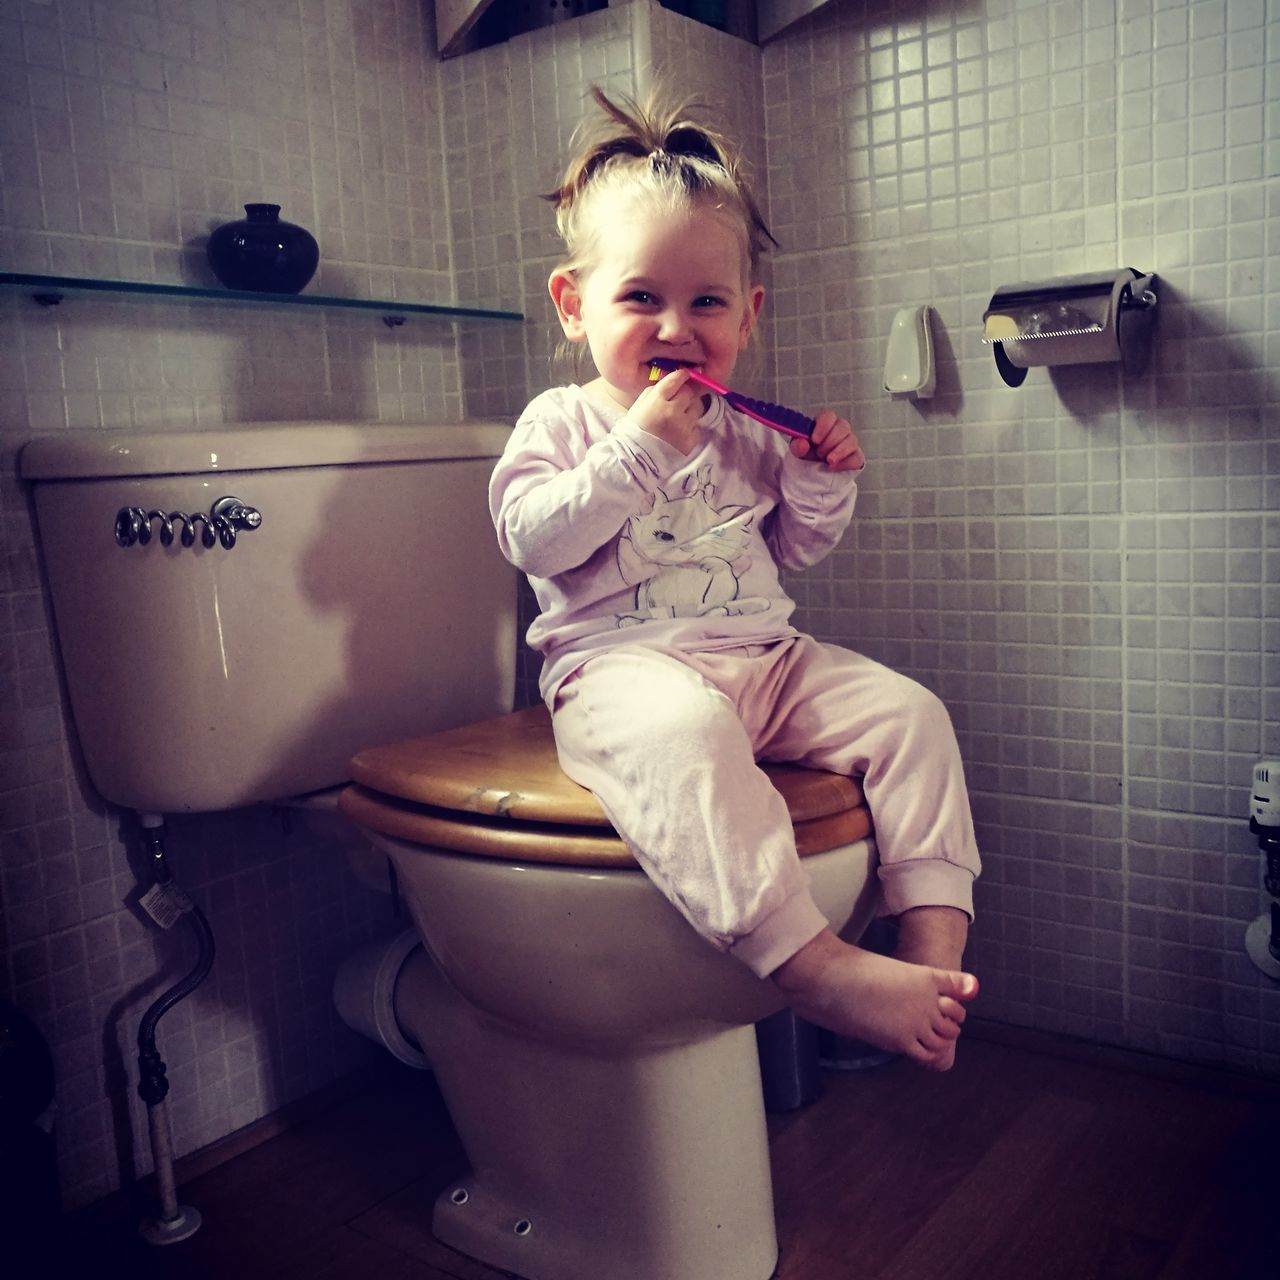 Baby Sitting Bathroom Indoors  One Person Full Length People Babies Only Day Toilet Bowl Brushing My Teeth EyeEmNewHere Child Smiling Lifestyles Happiness Relaxation Real People Beauty Mygirls♡ My Love Cheerful EyeEmNewHere